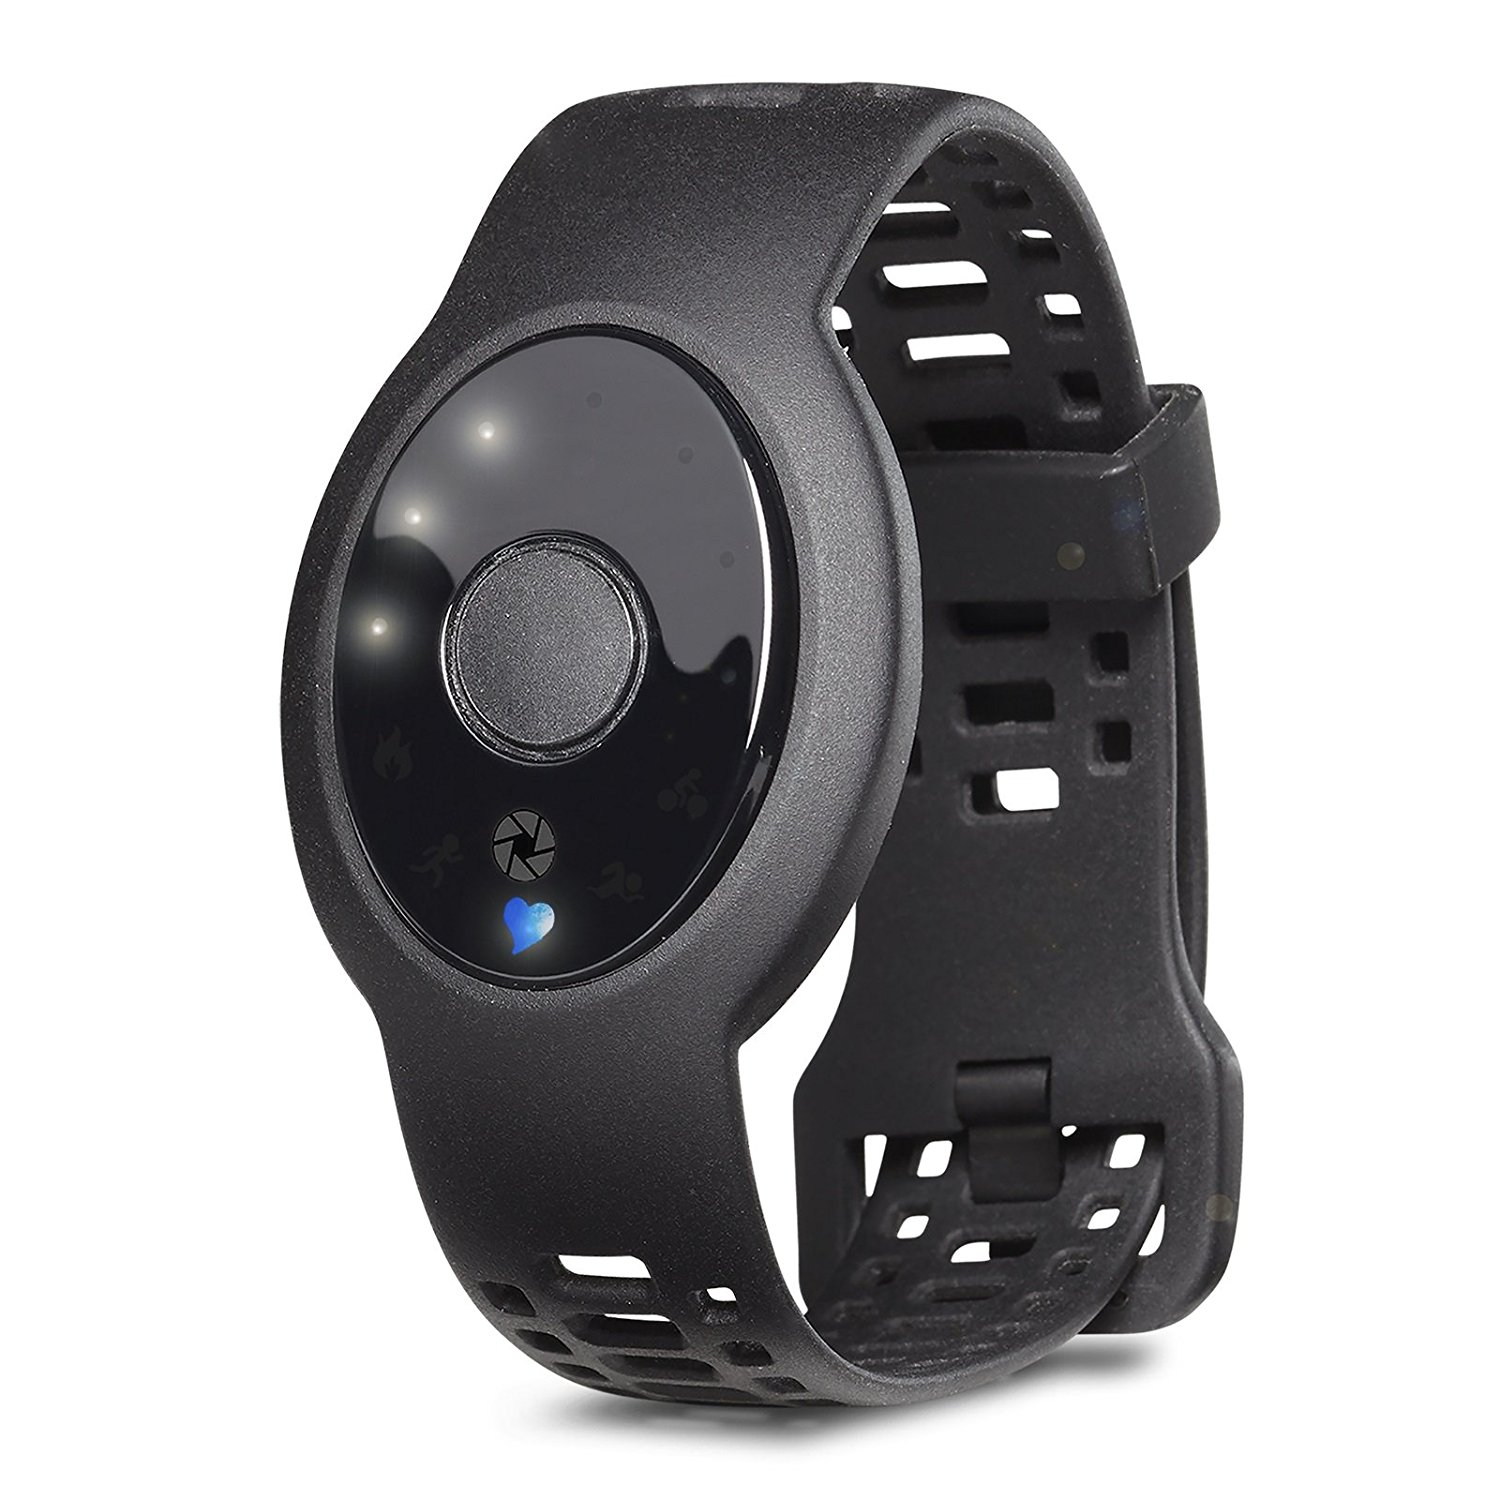 Lifetrack Zoom HRV fitness watch